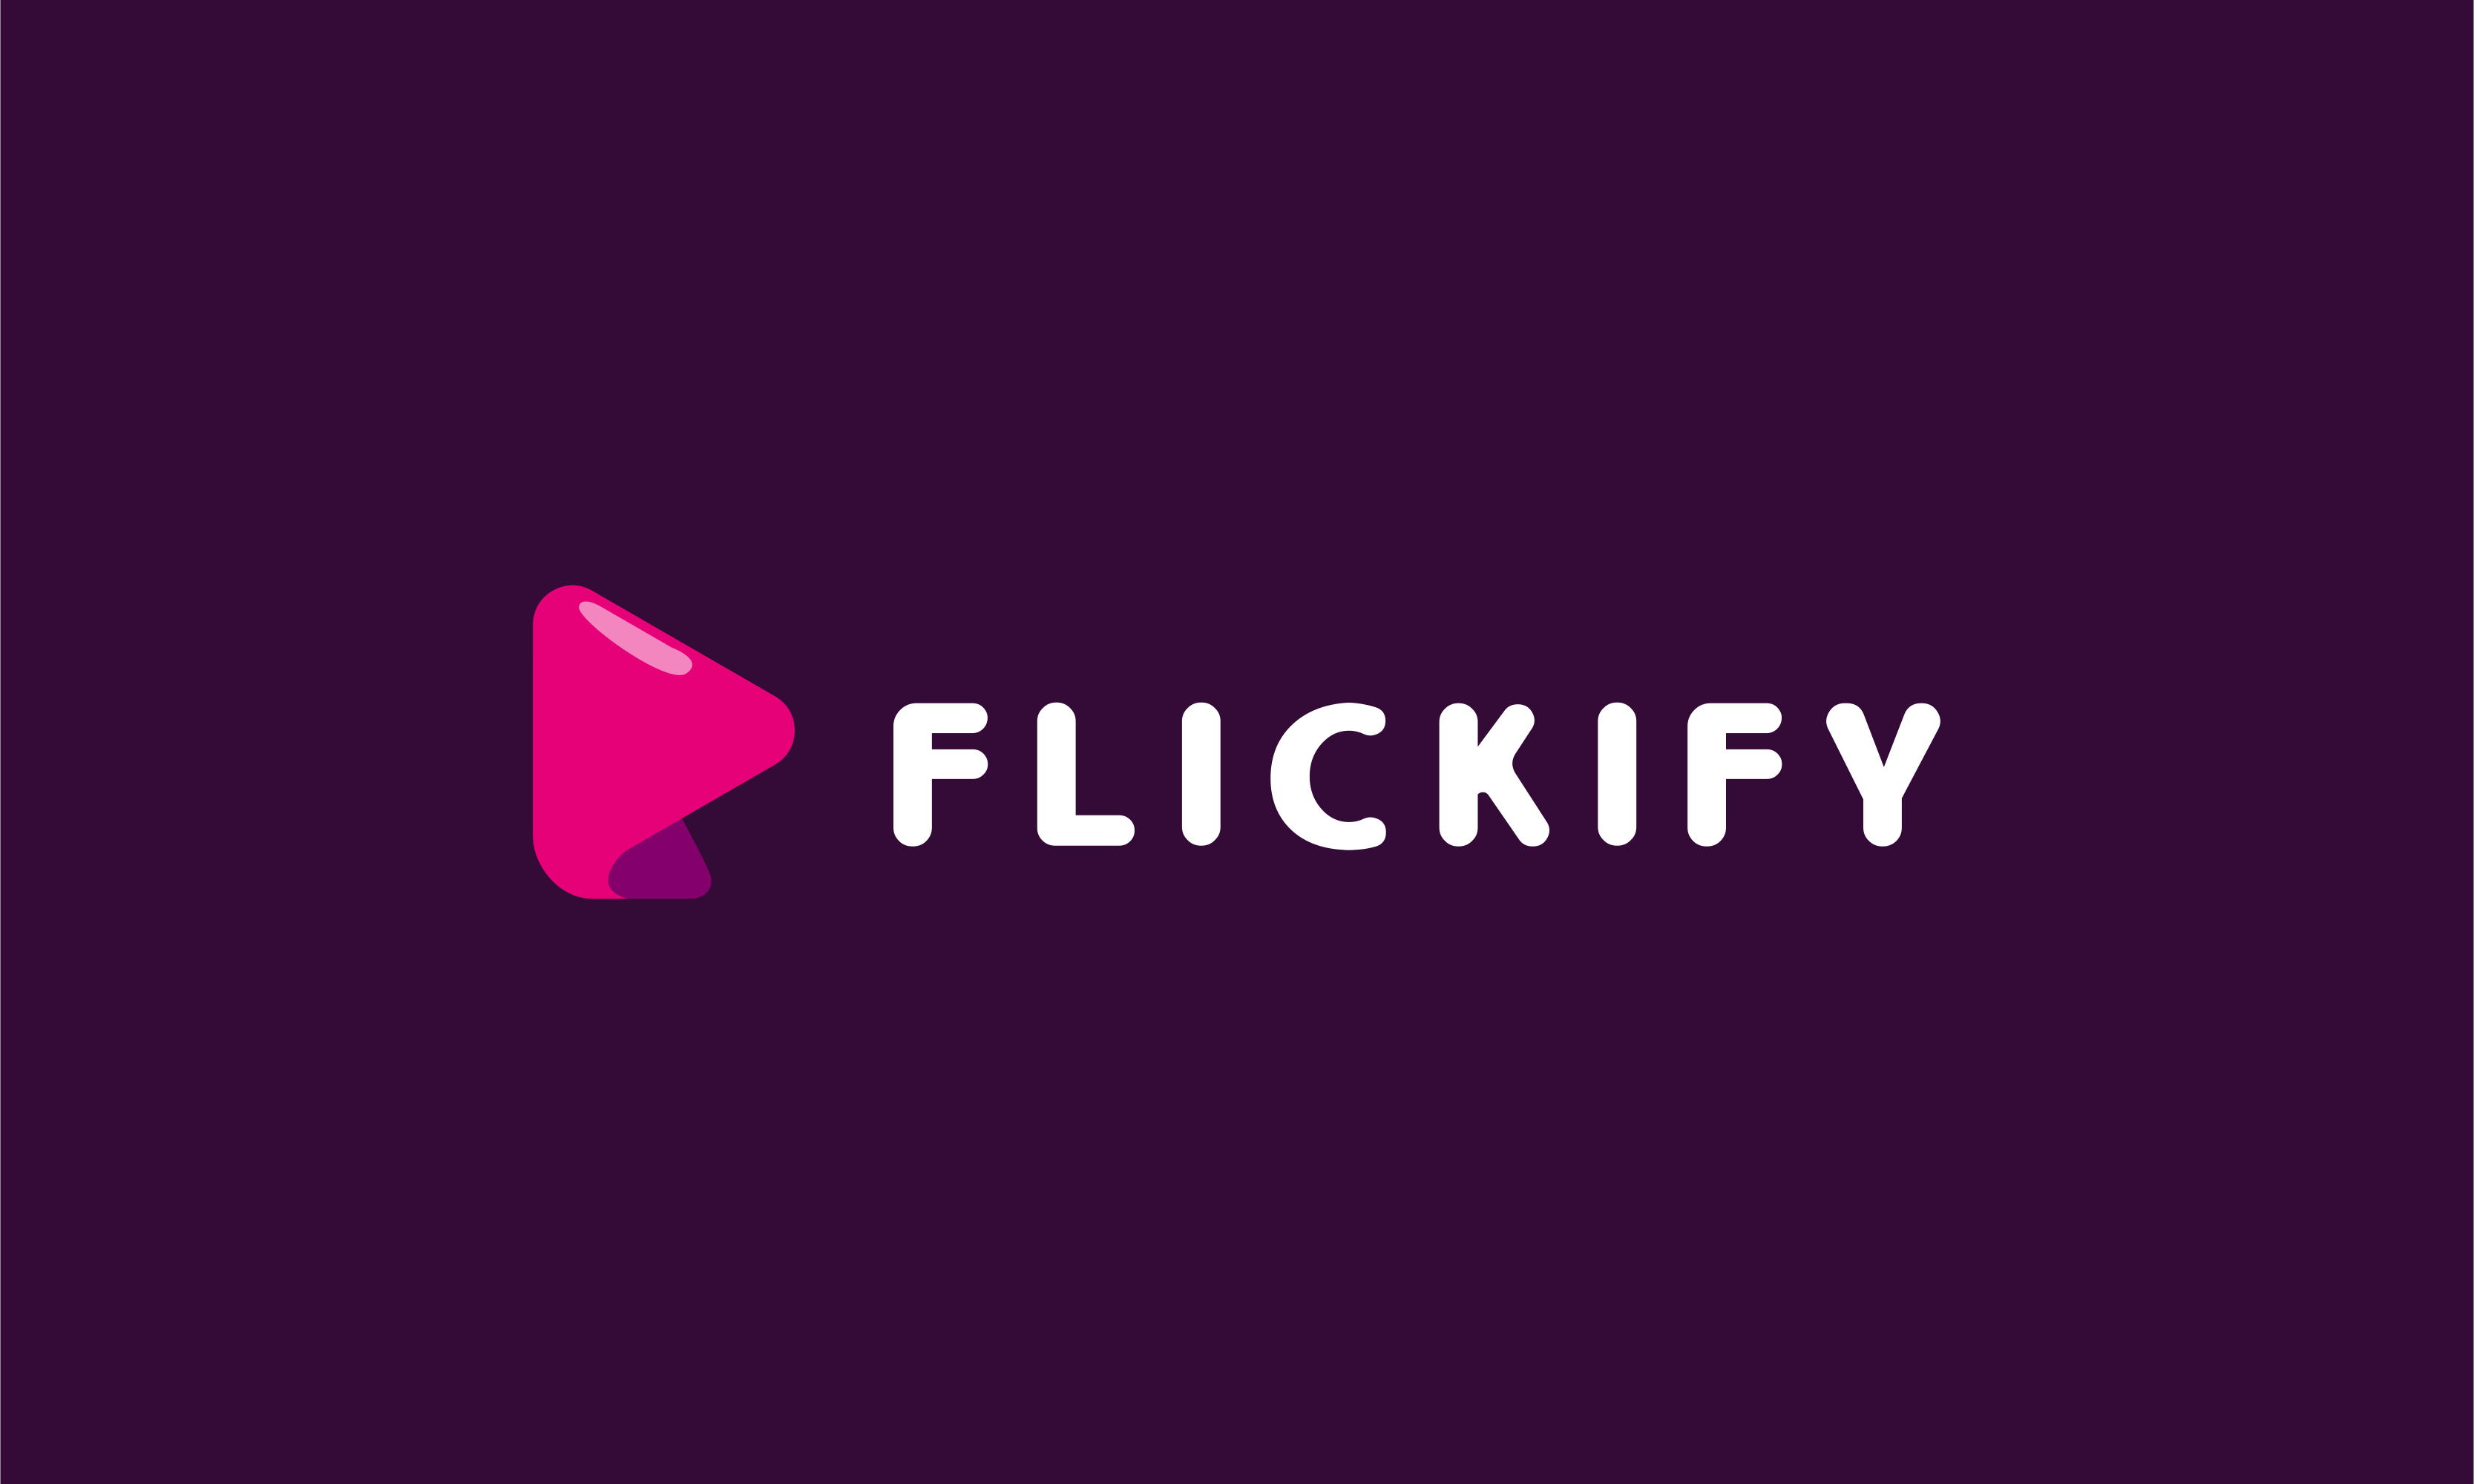 Flickify